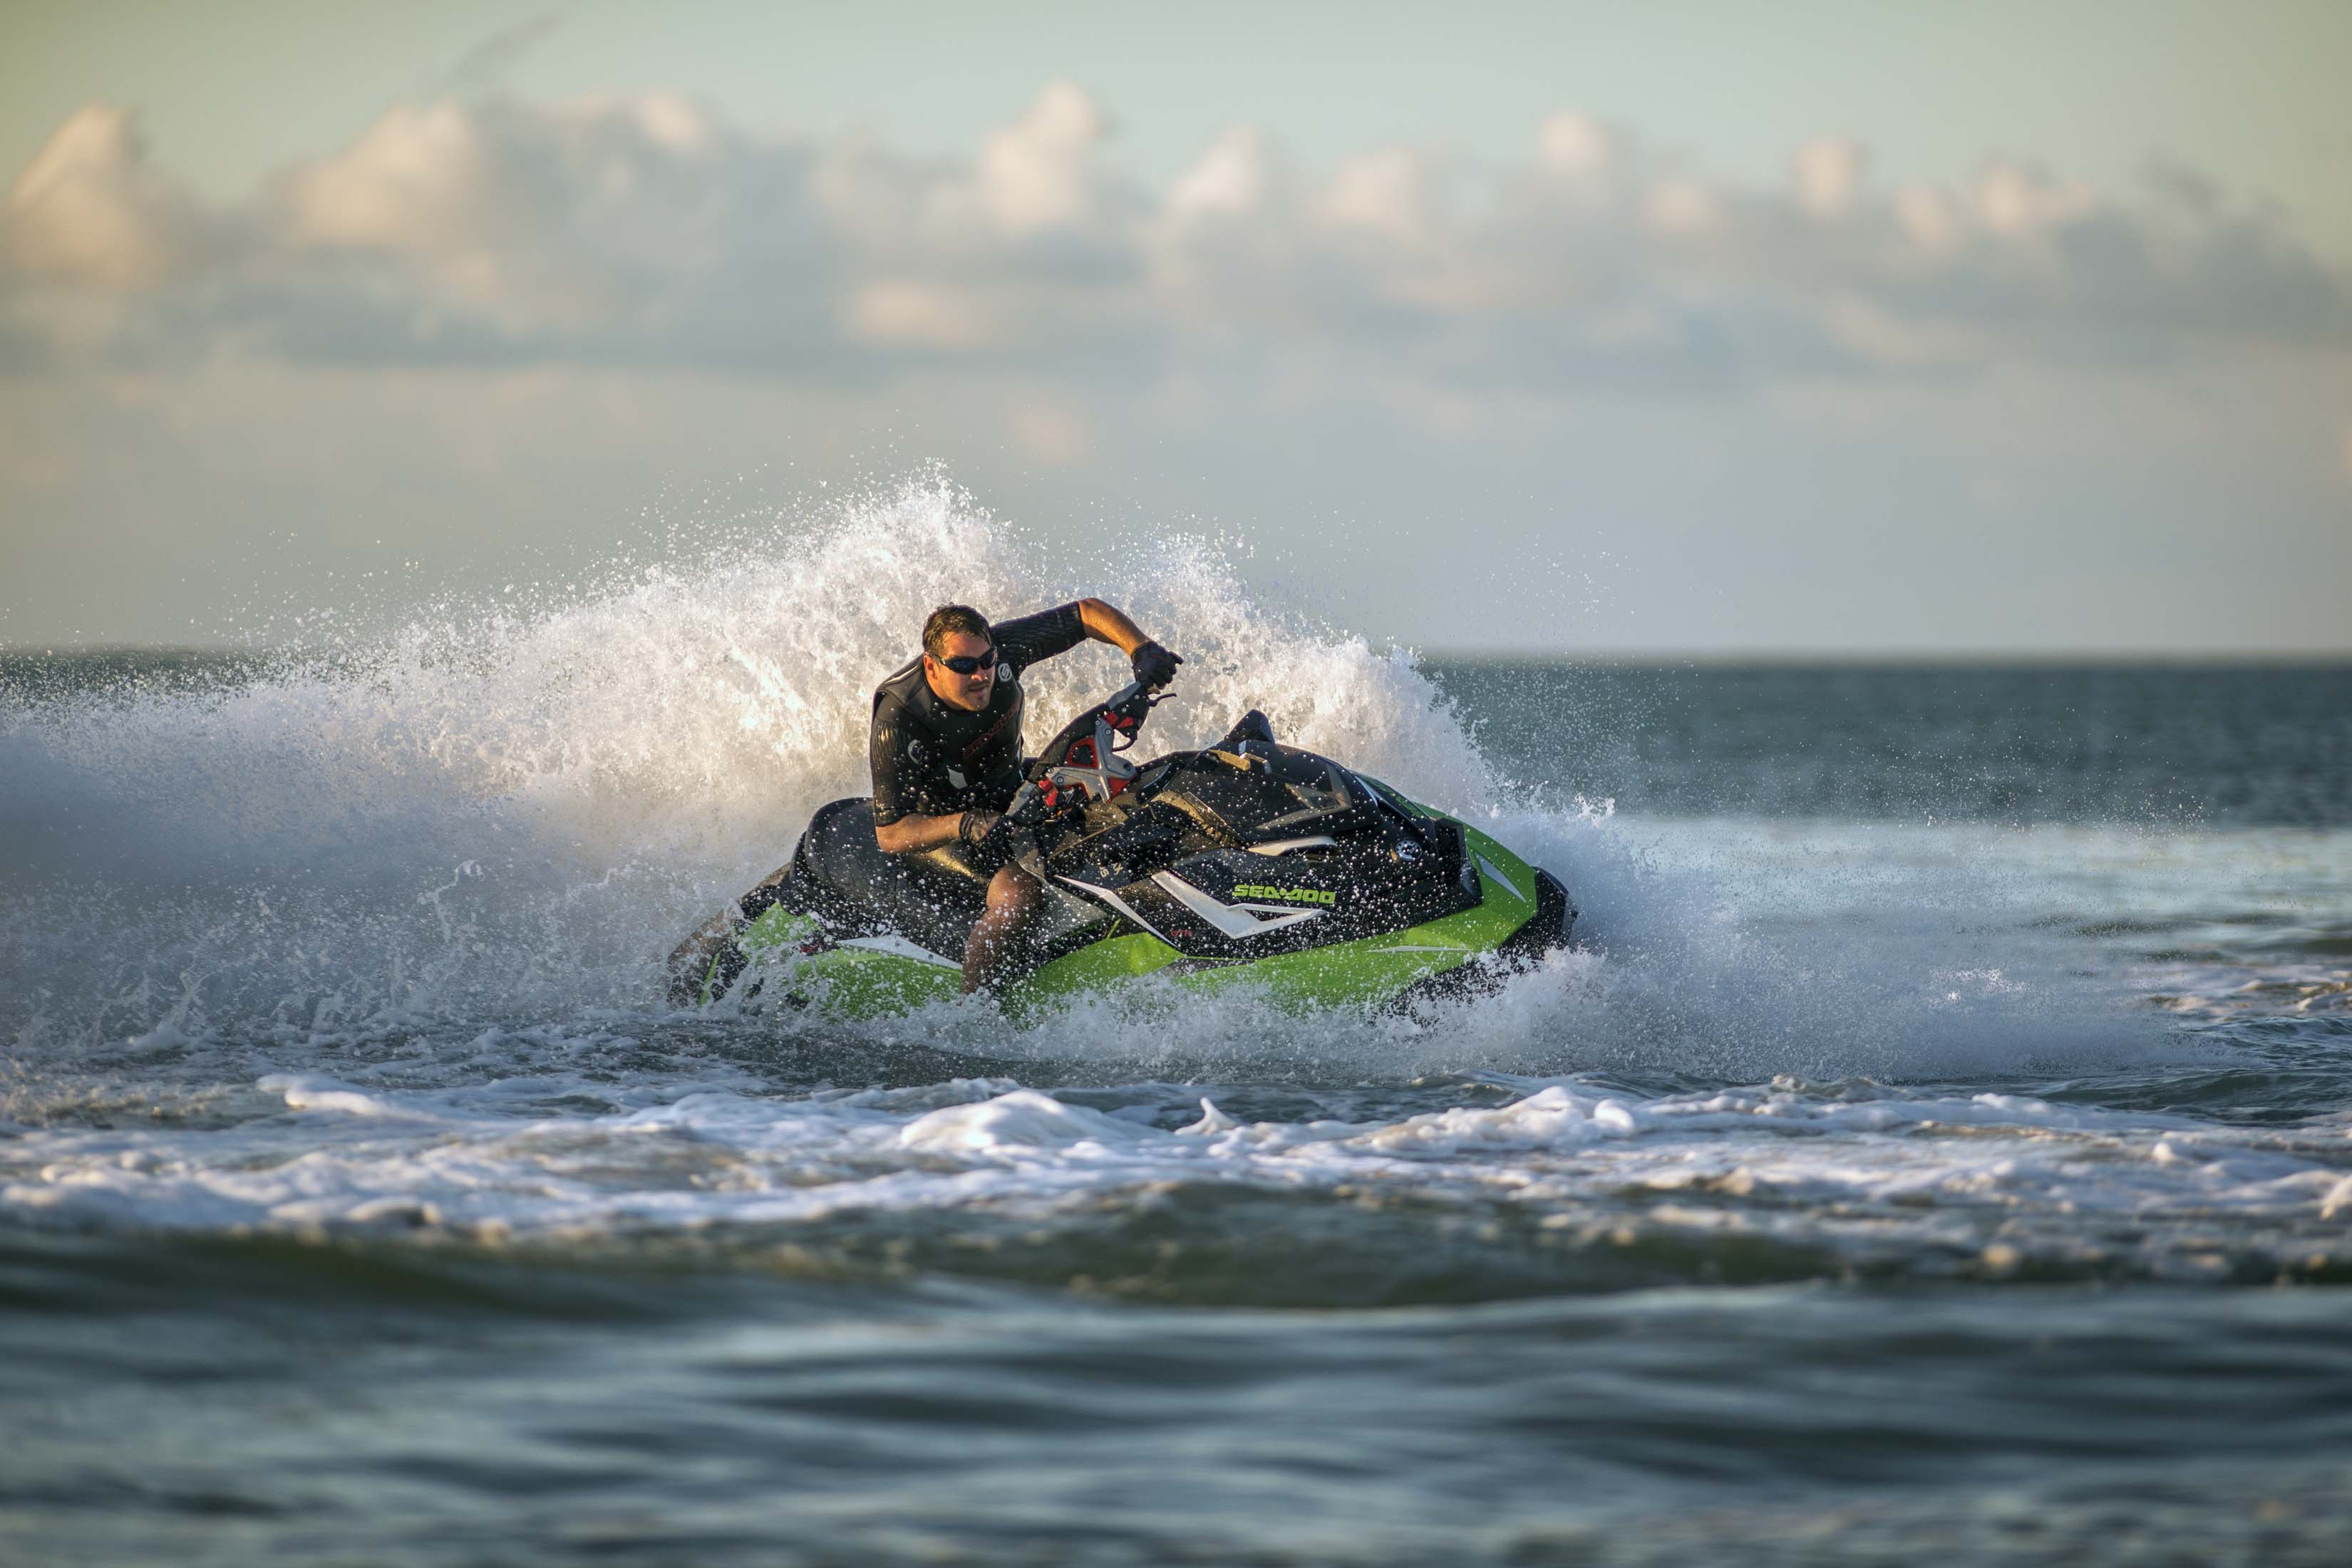 Creative Media Mavericks - Sea-Doo BRP Powersport